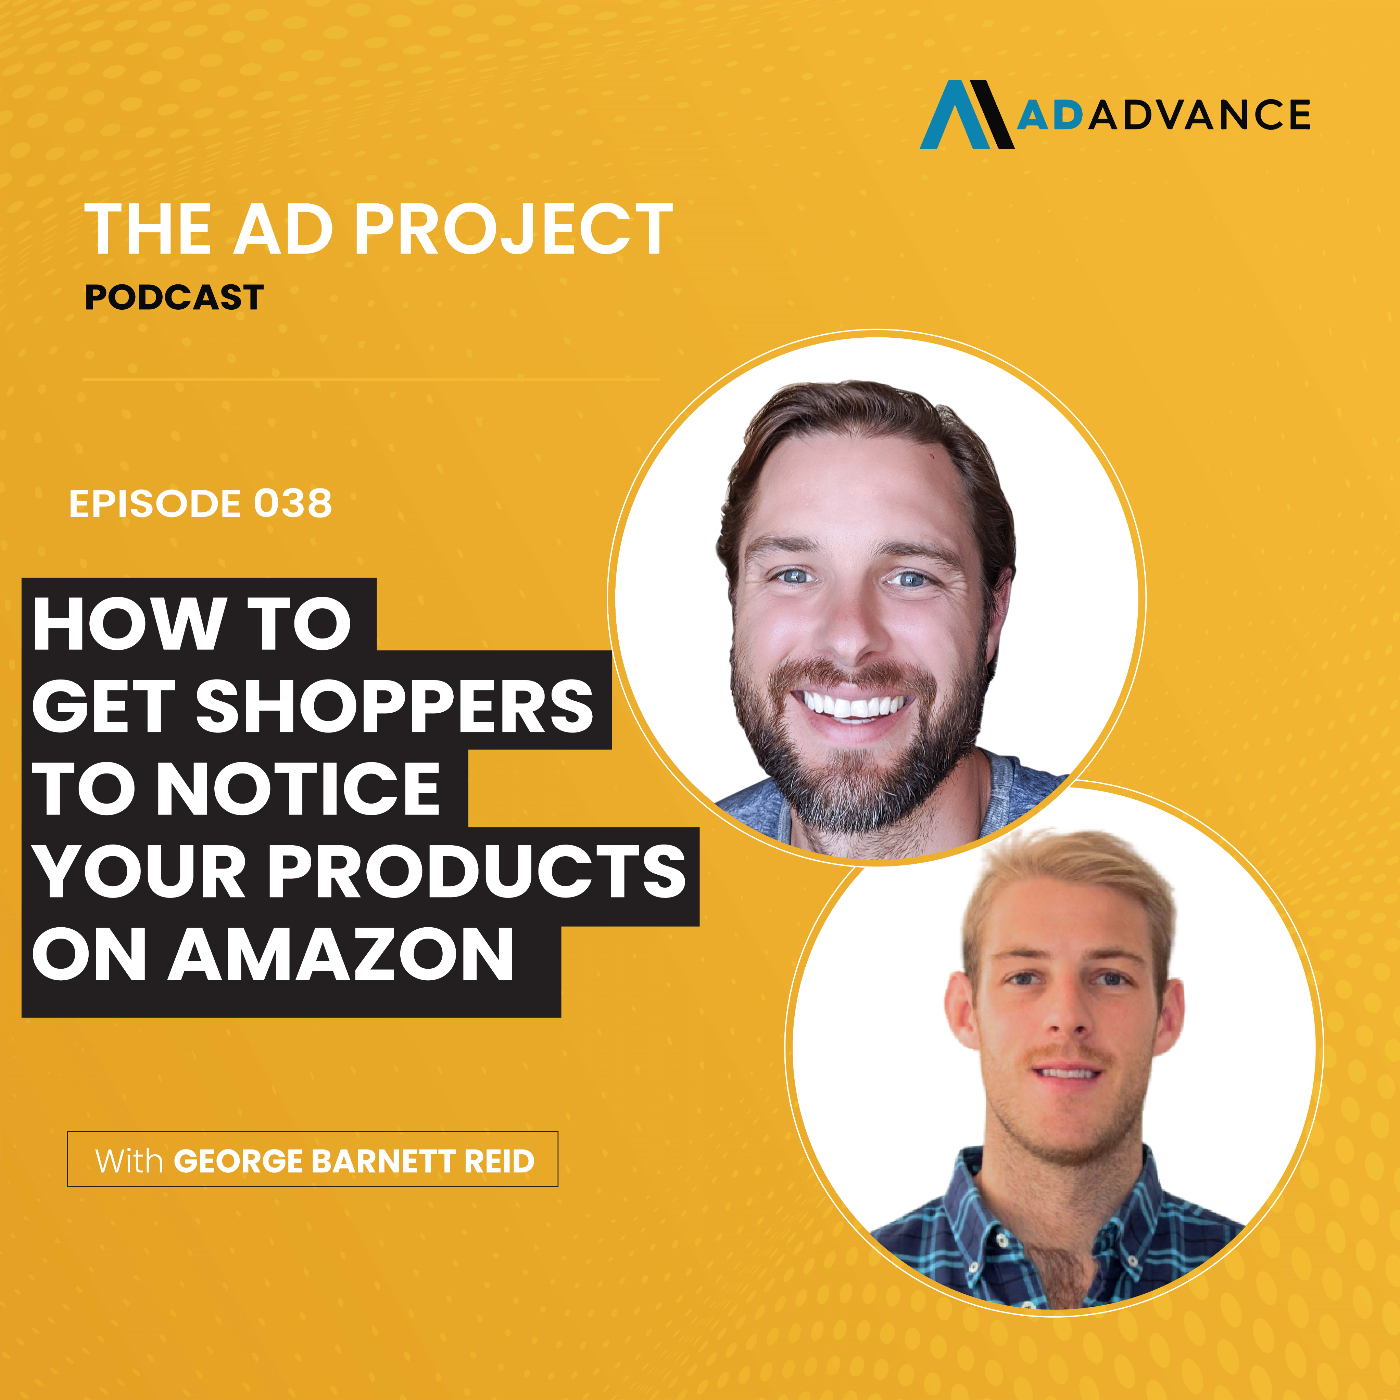 Artwork for podcast The Ad Project